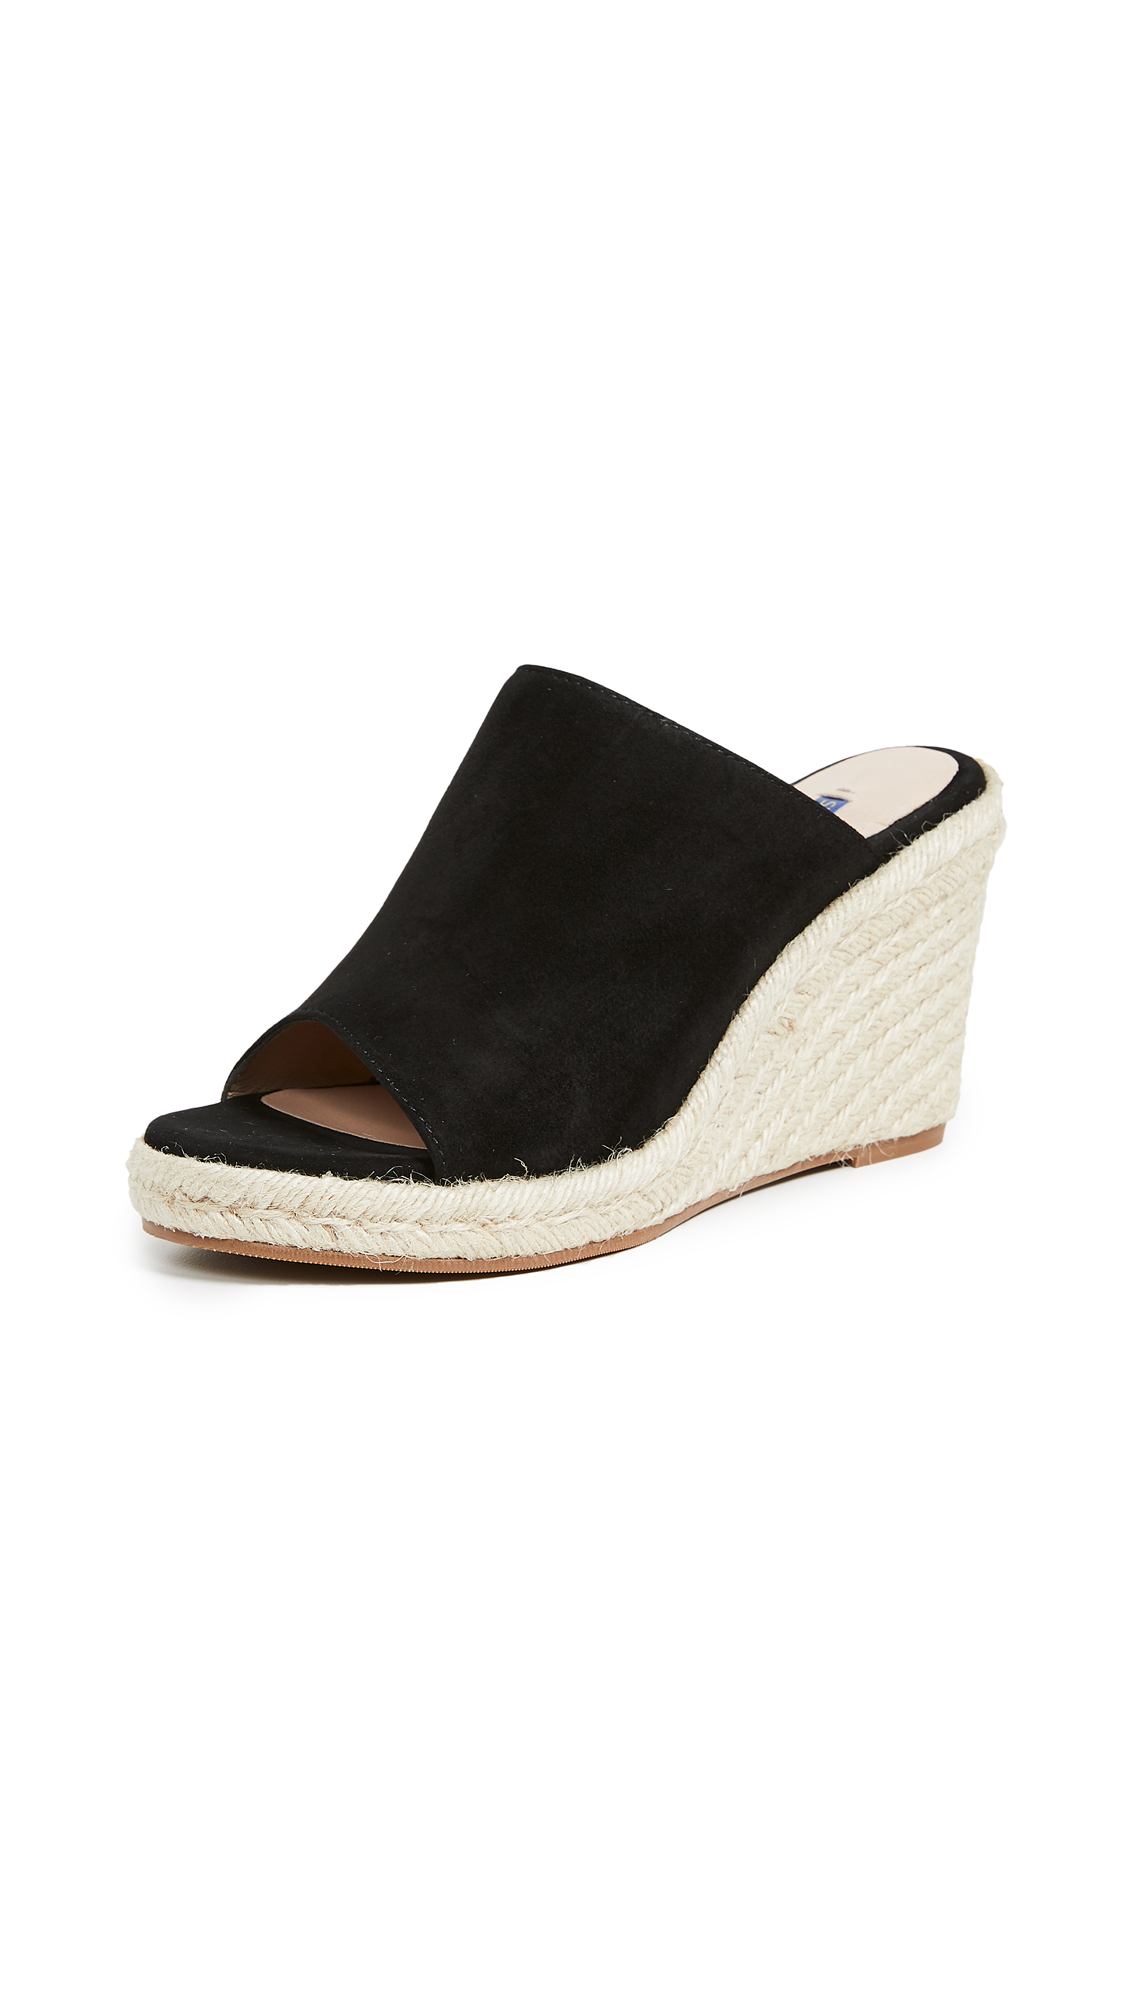 cfa0b76802d Stuart Weitzman Women s Marabella Suede Espadrille Wedge Sandals In Black